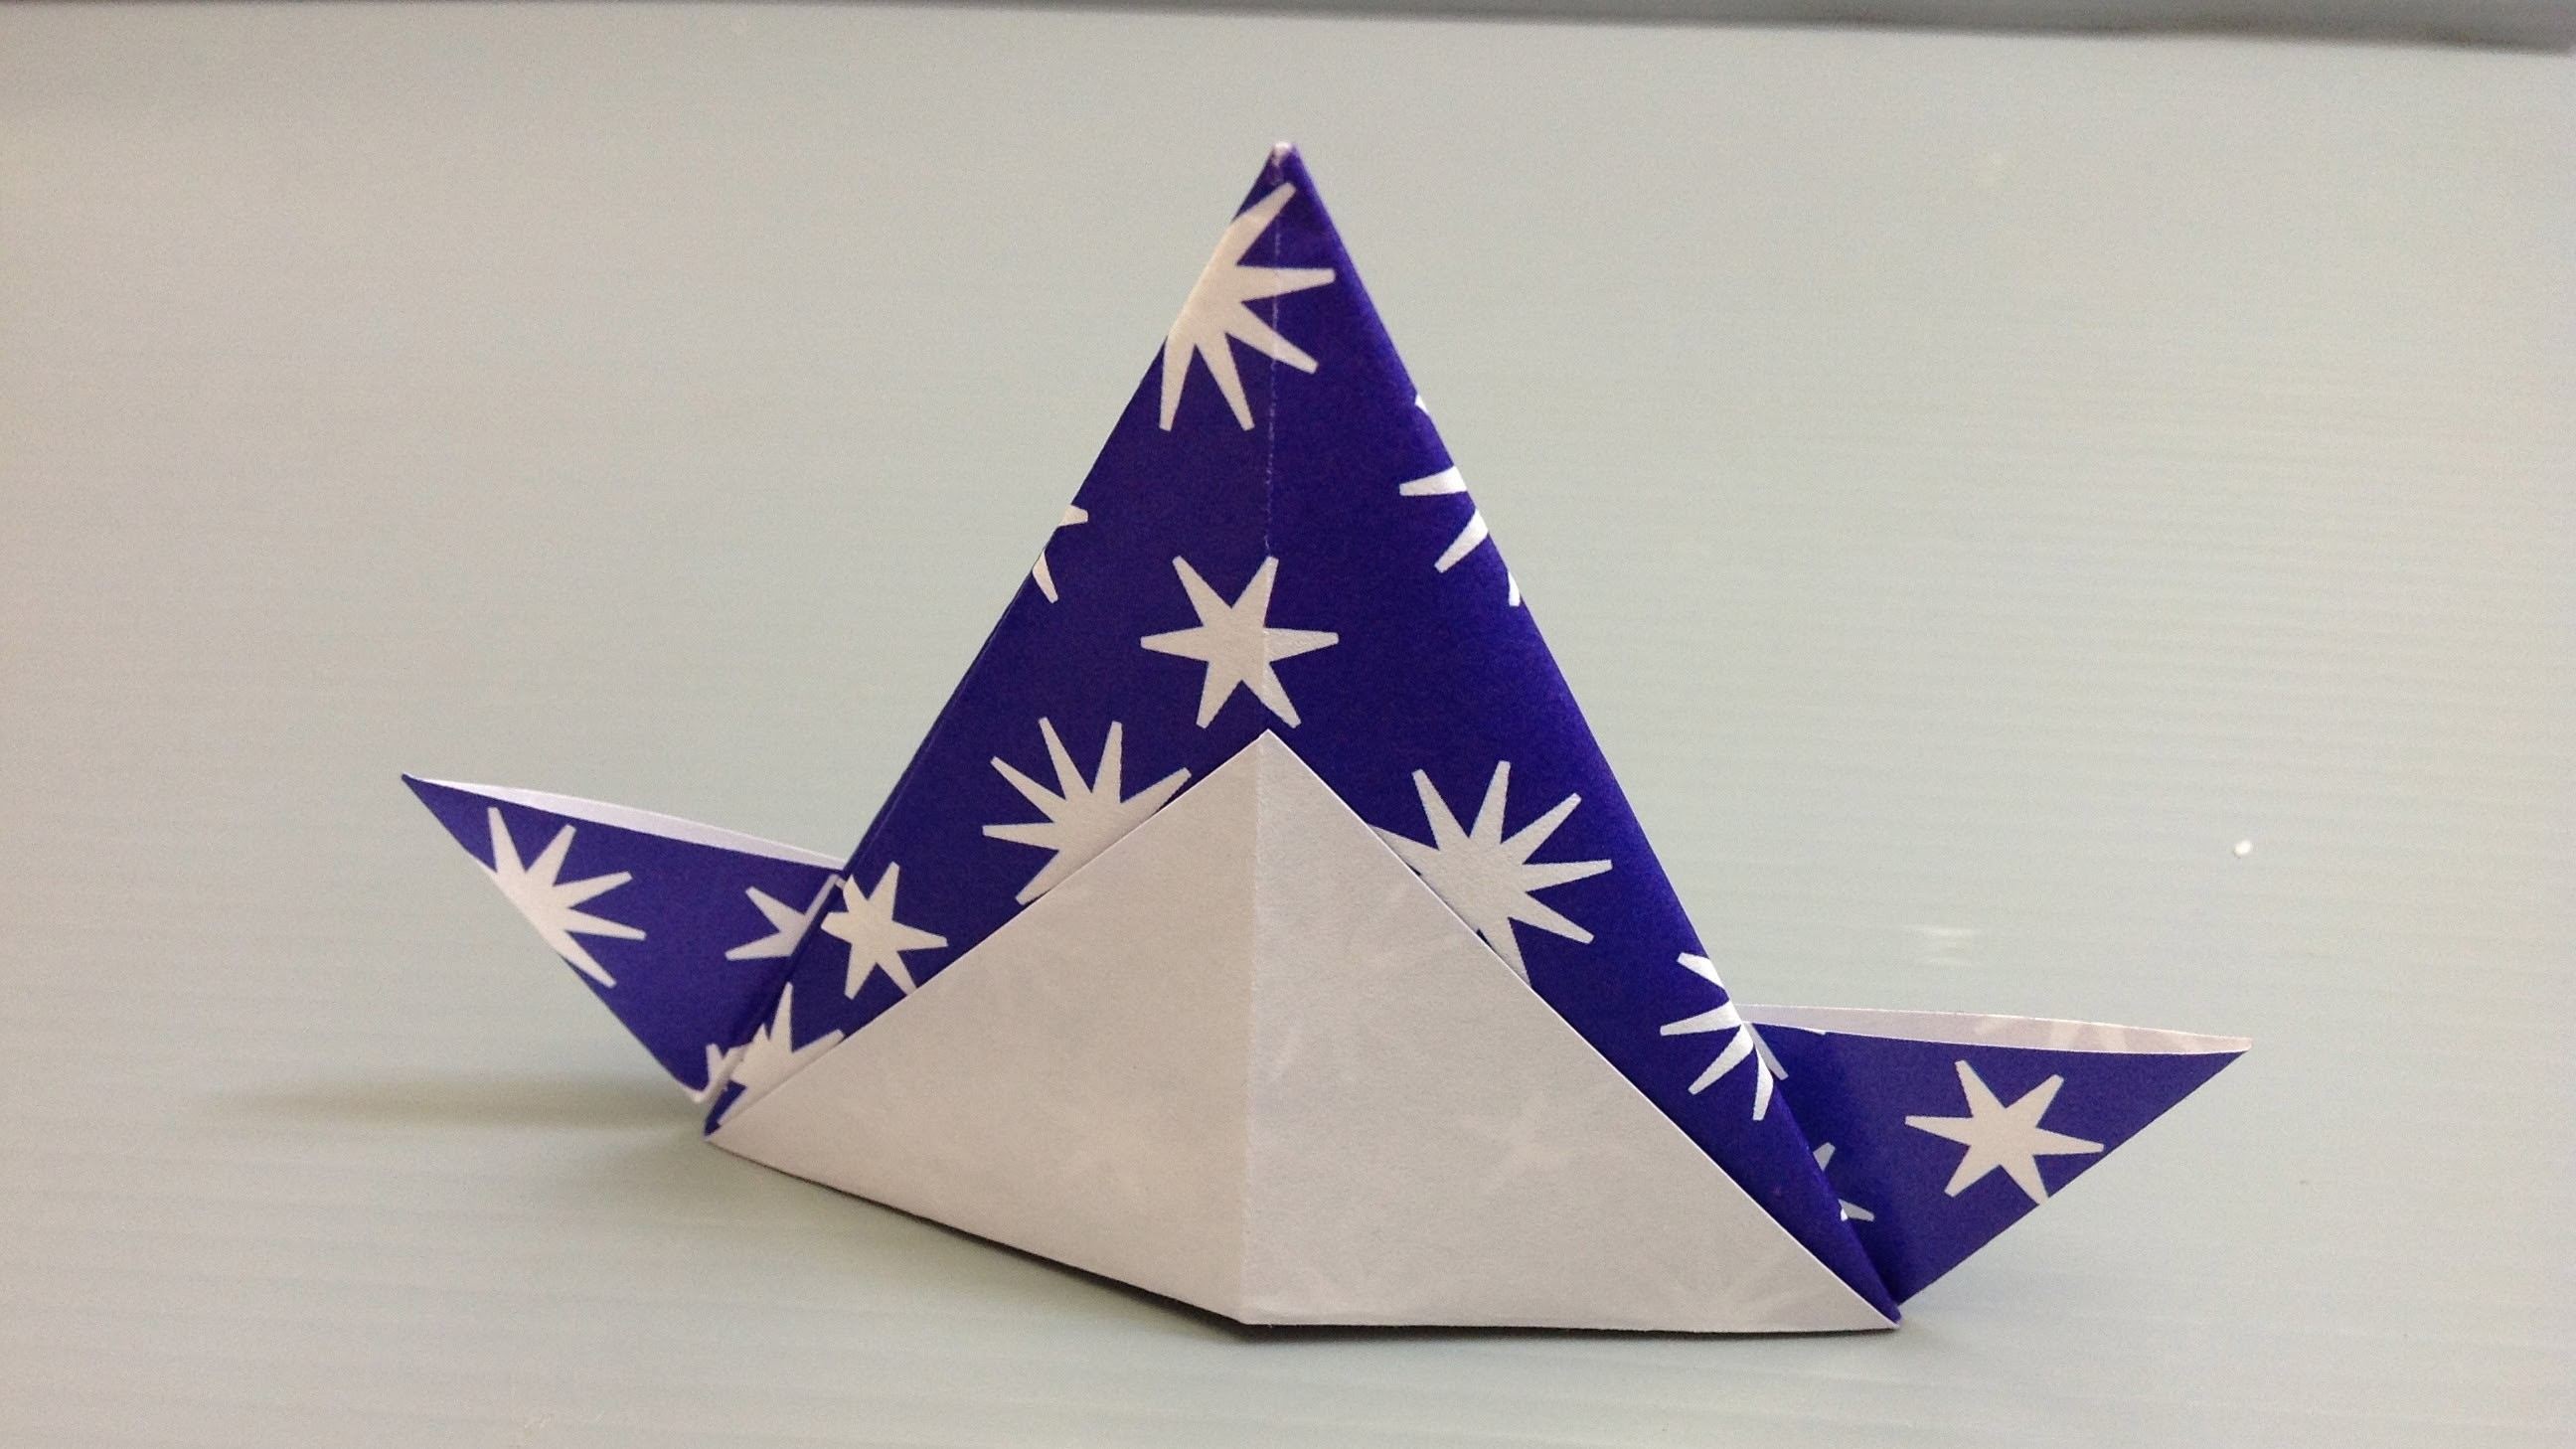 Free Origami Paper - Print Your Own! - White Stars Pattern